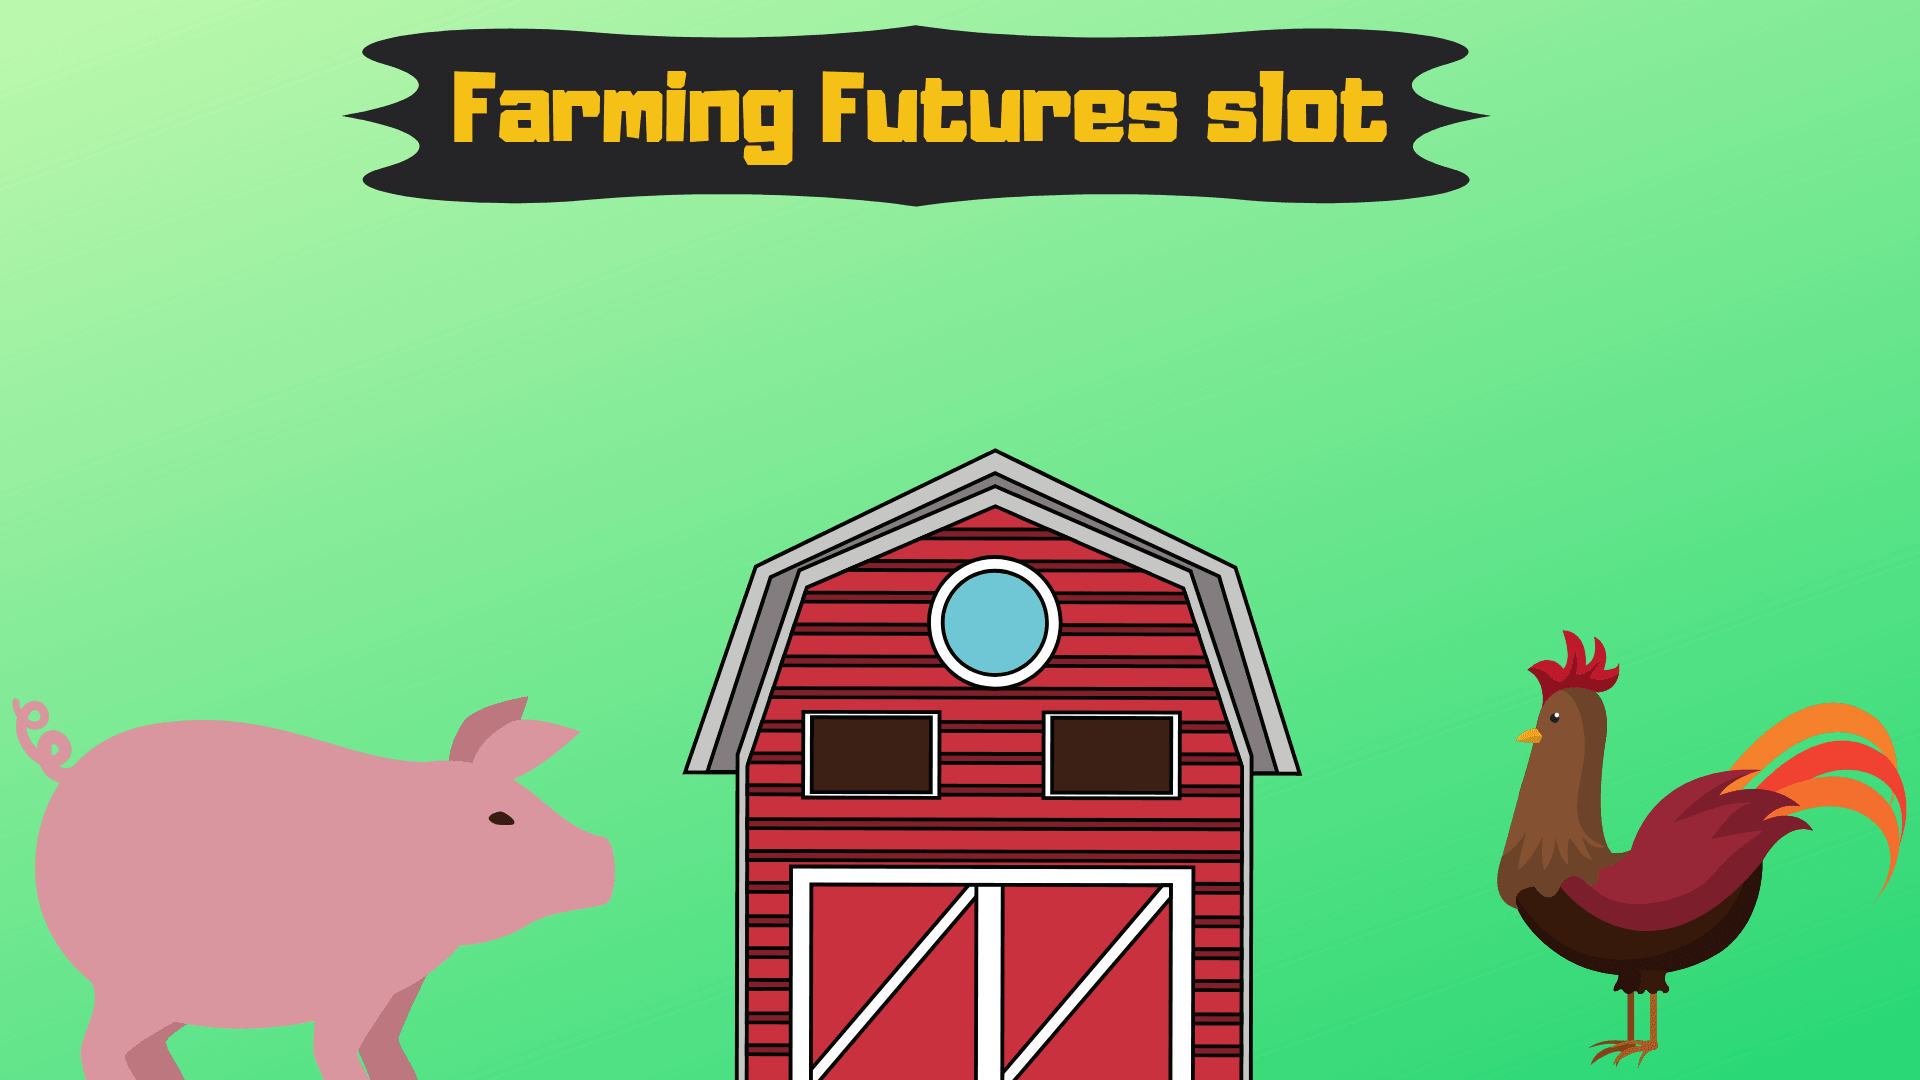 Farming Futures slot